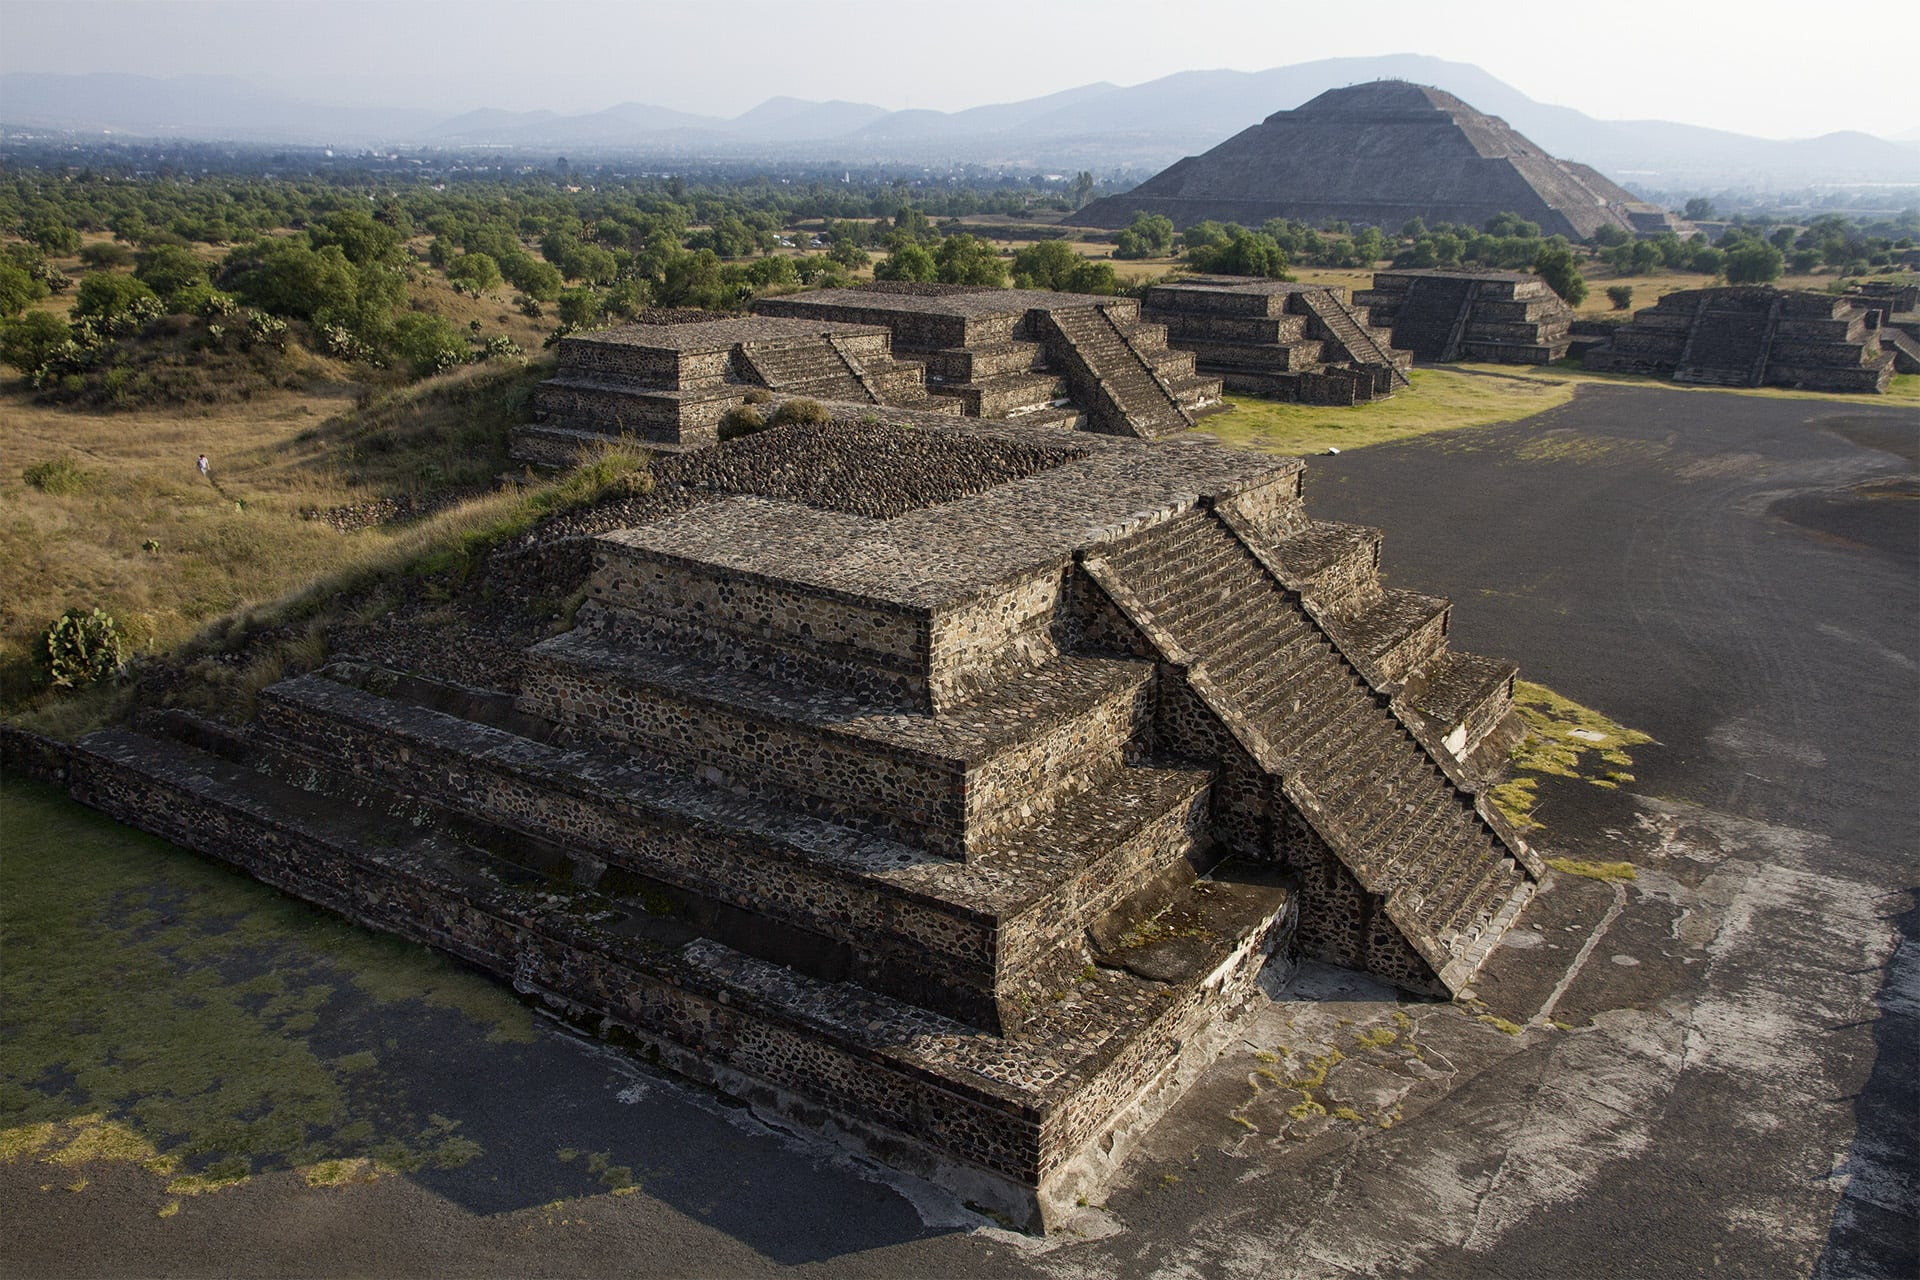 Shadows grow long and streak away from the Mesoamerican pyramids.